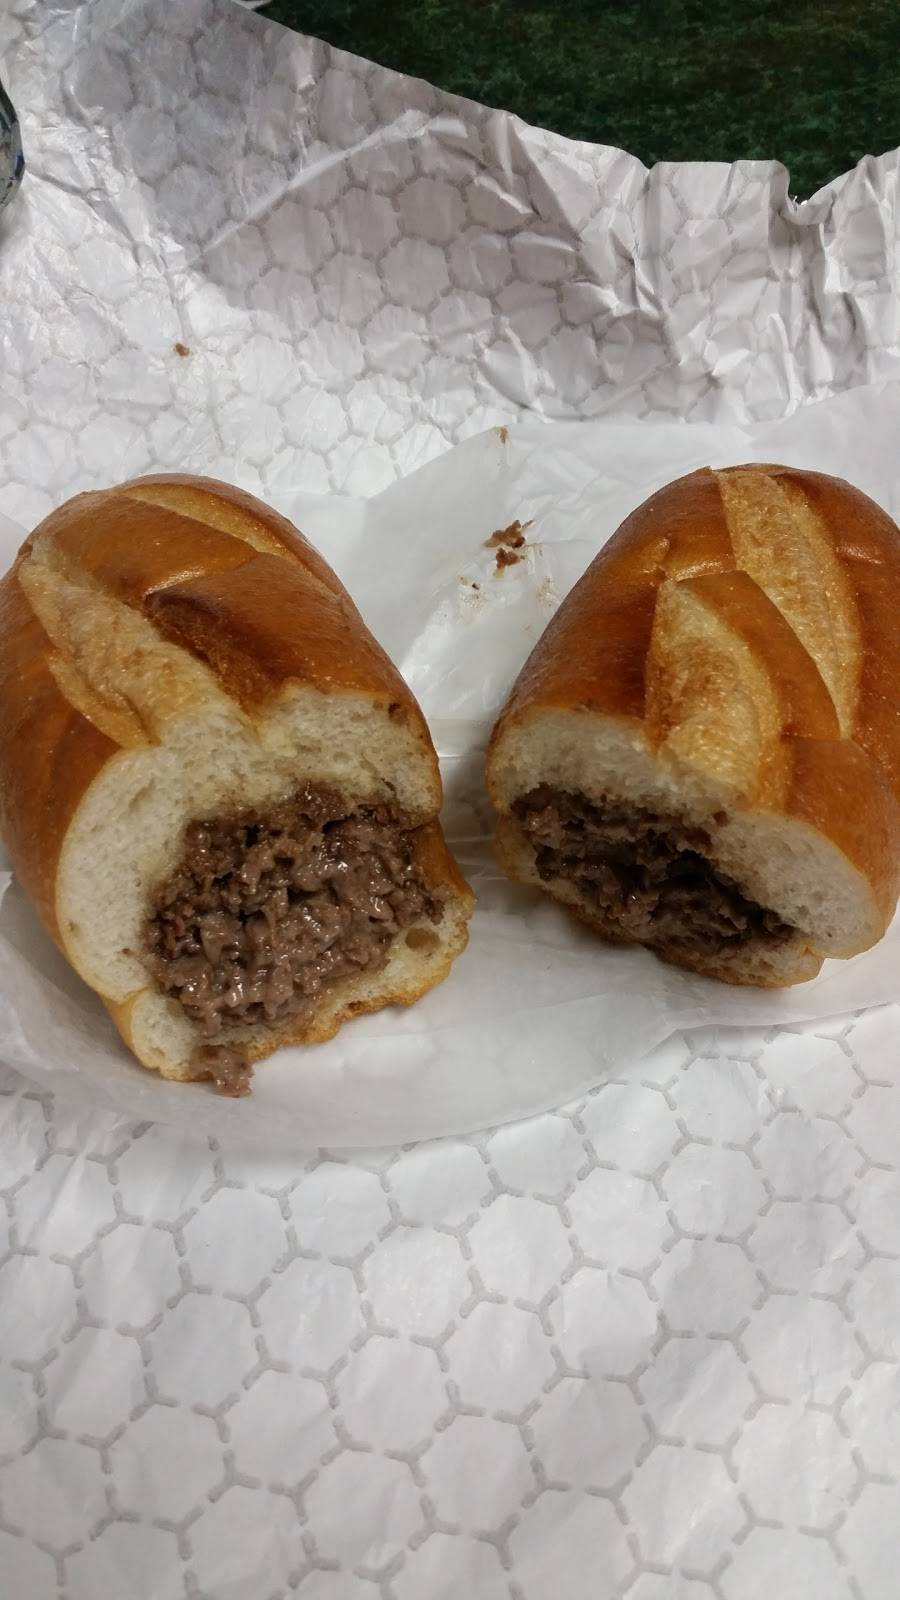 Steak & Hoagies | meal takeaway | 1657 Madison Ave # 1, New York, NY 10029, USA | 9174925001 OR +1 917-492-5001